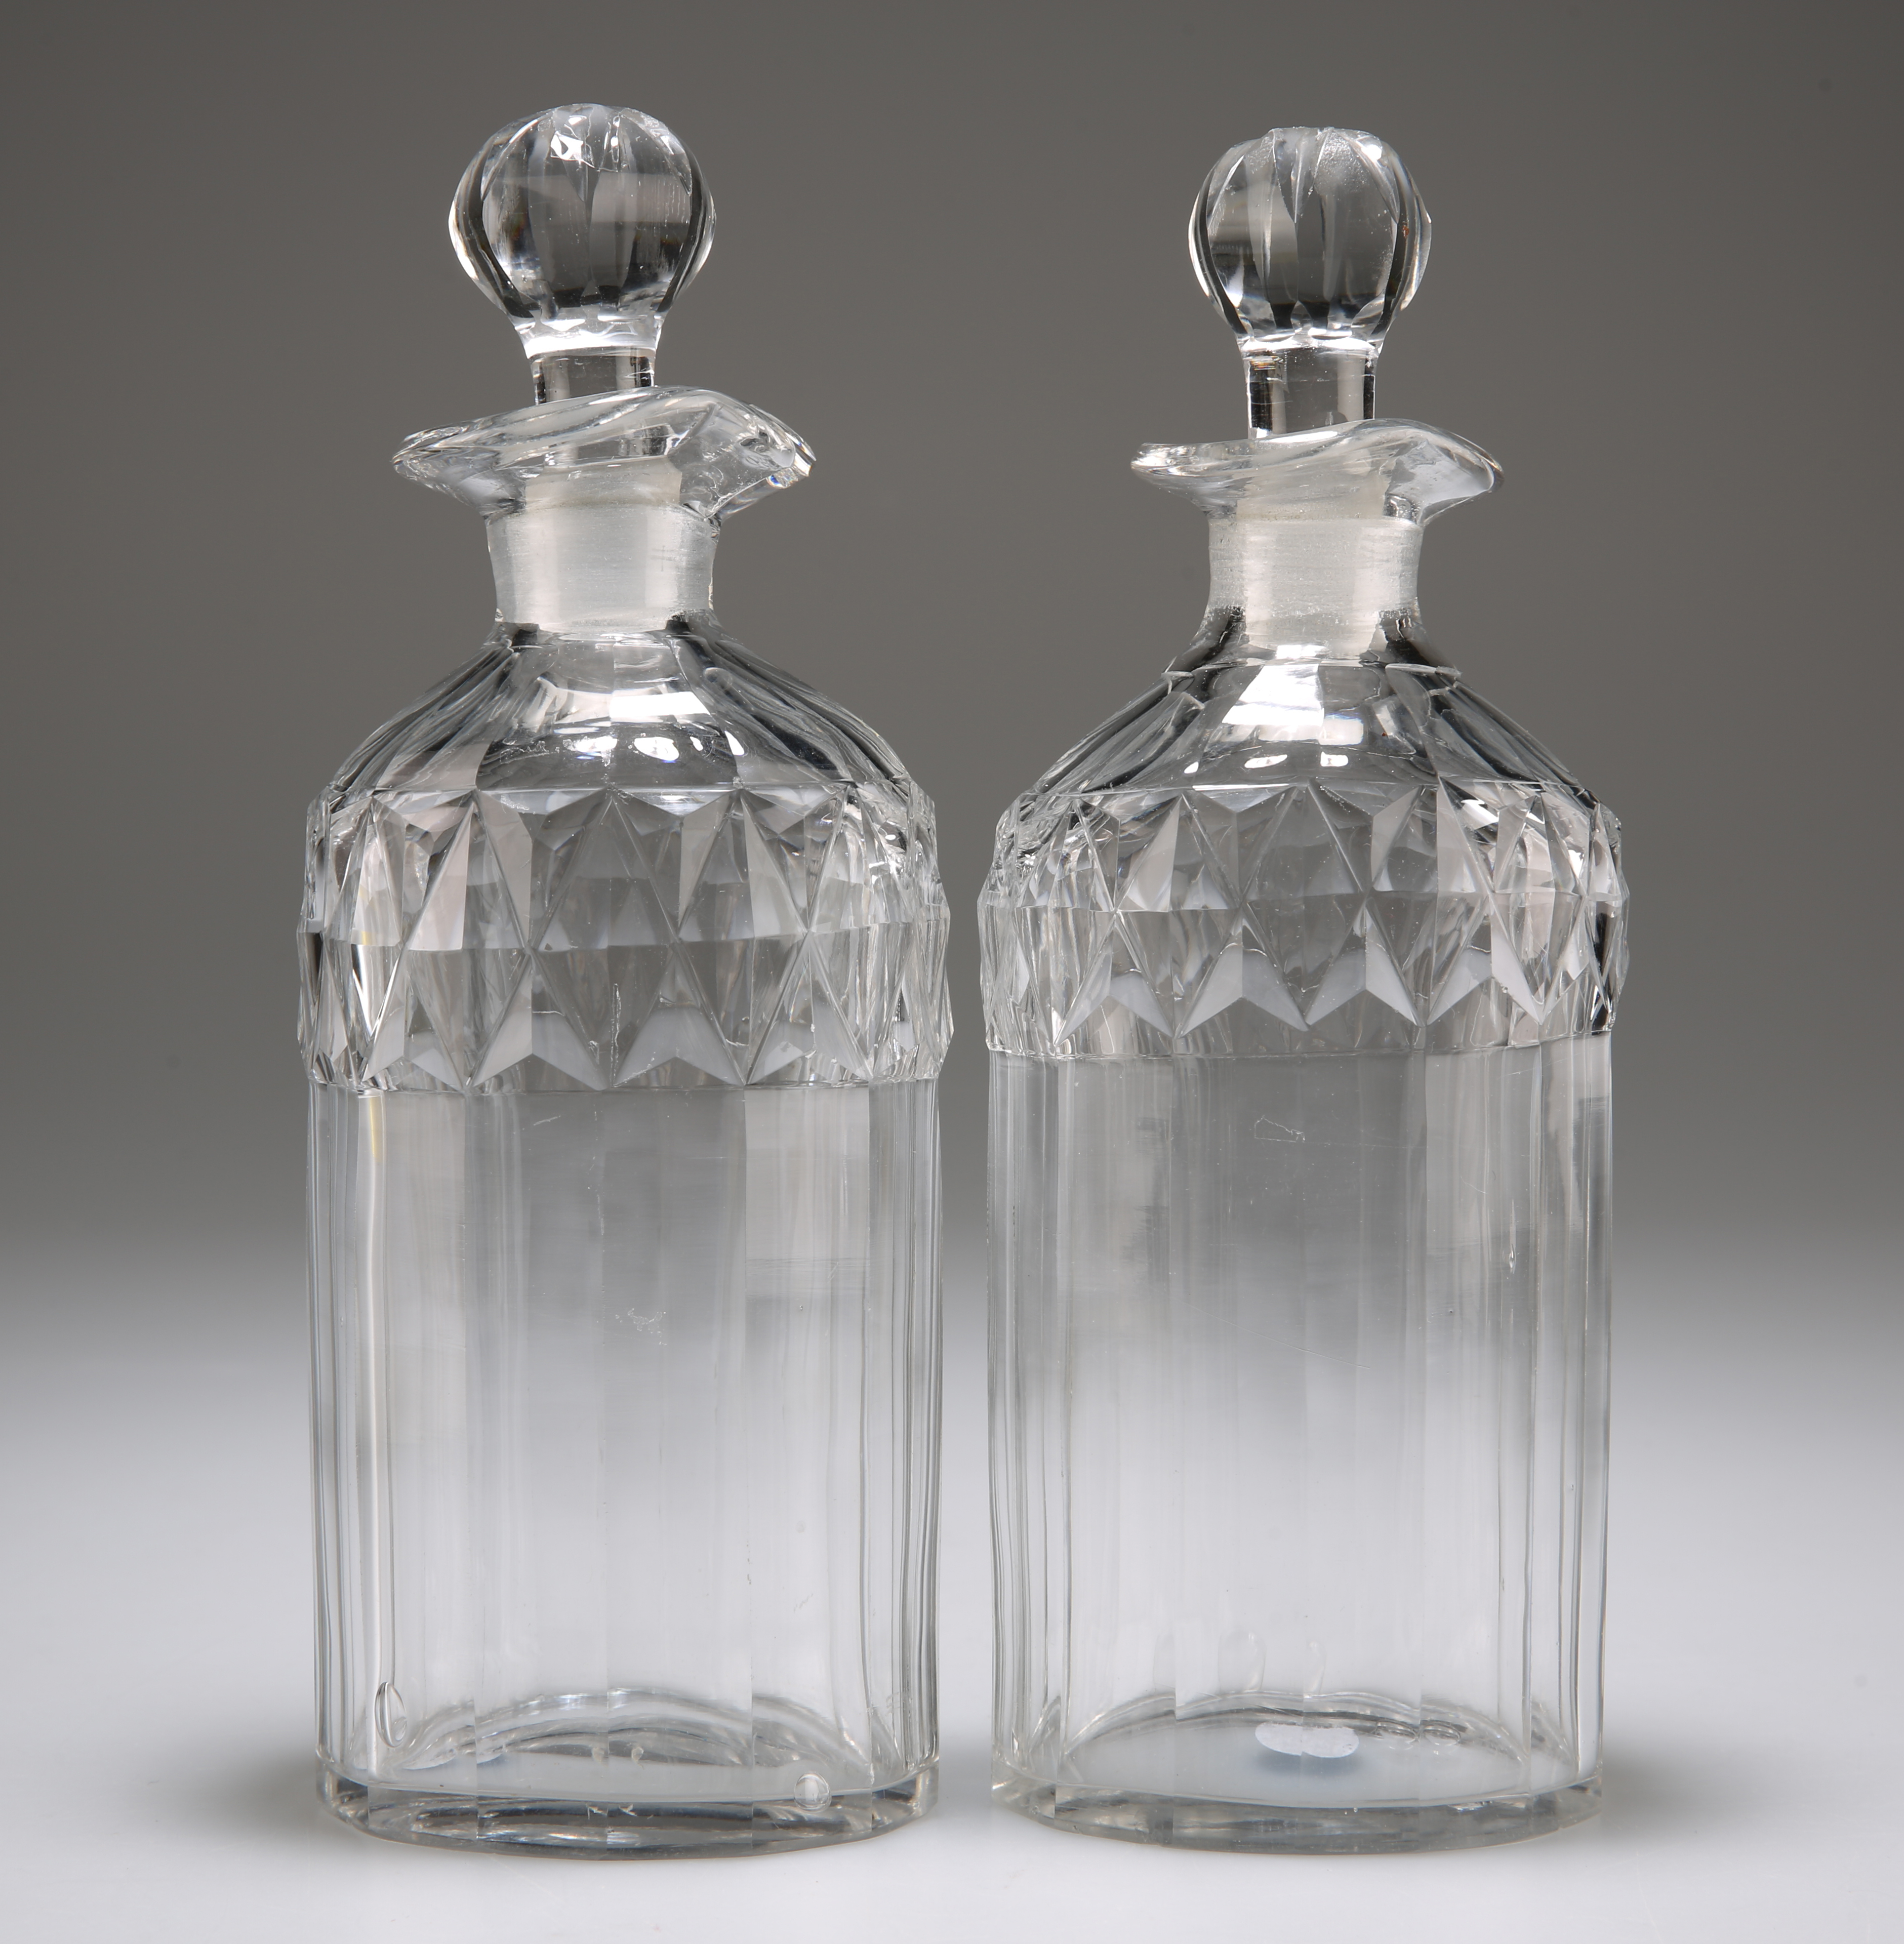 A PAIR OF GLASS SPIRIT DECANTERS WITH STOPPERS, CIRCA 1880